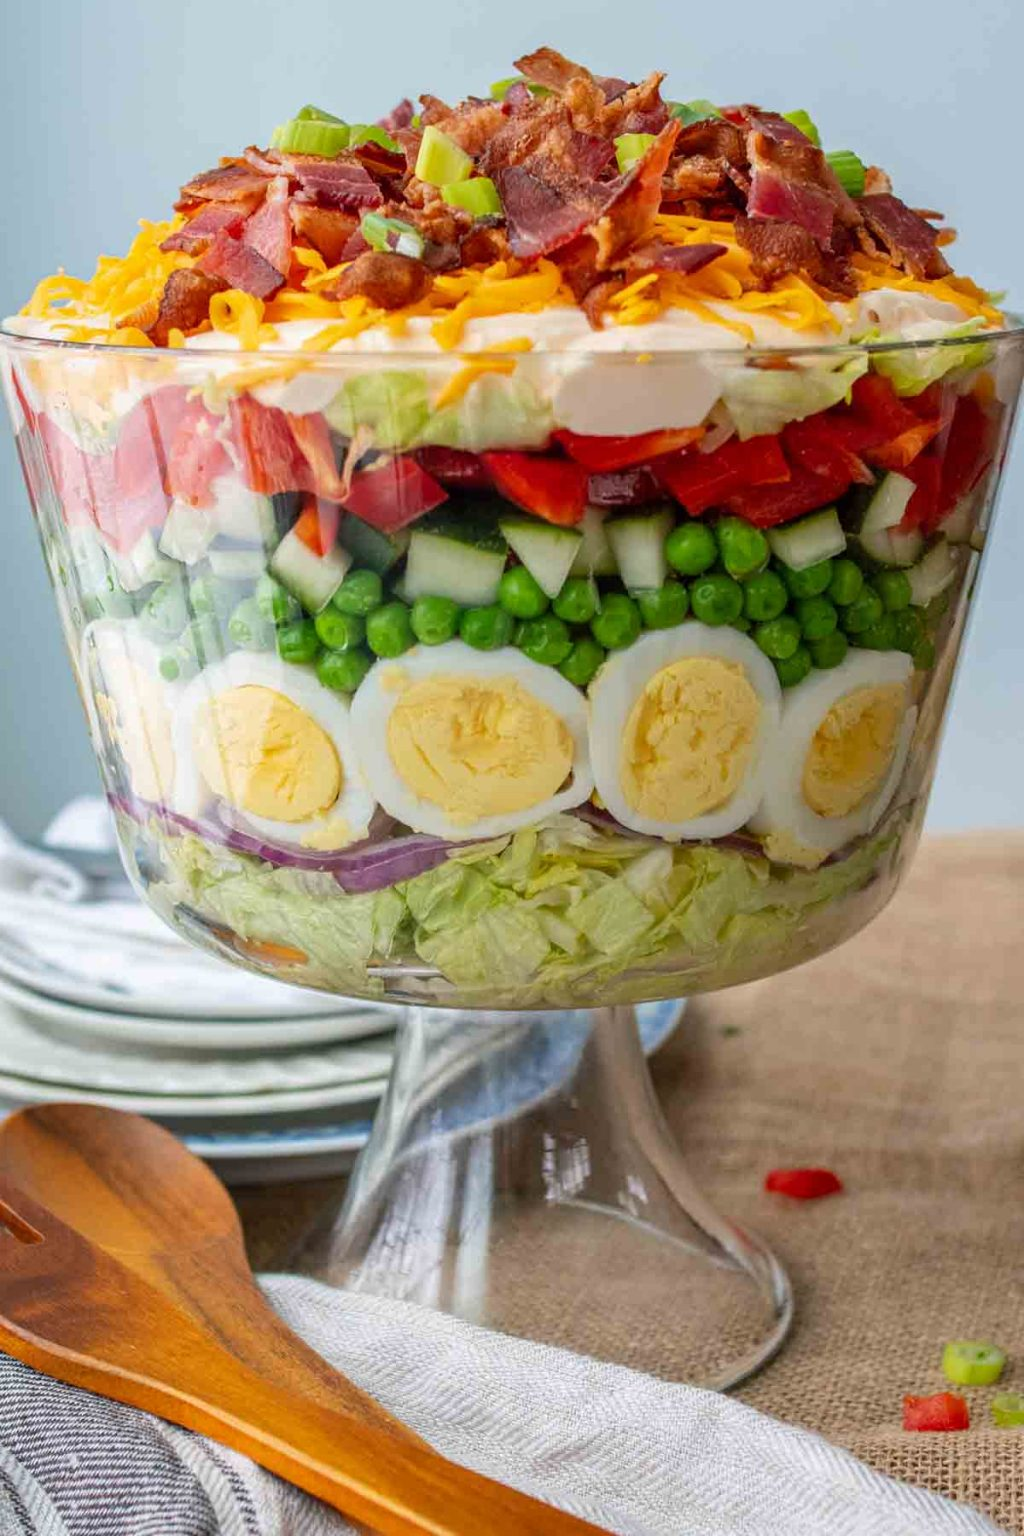 trifle bowl of 7 layer salad with wood serving utensils laying next to it